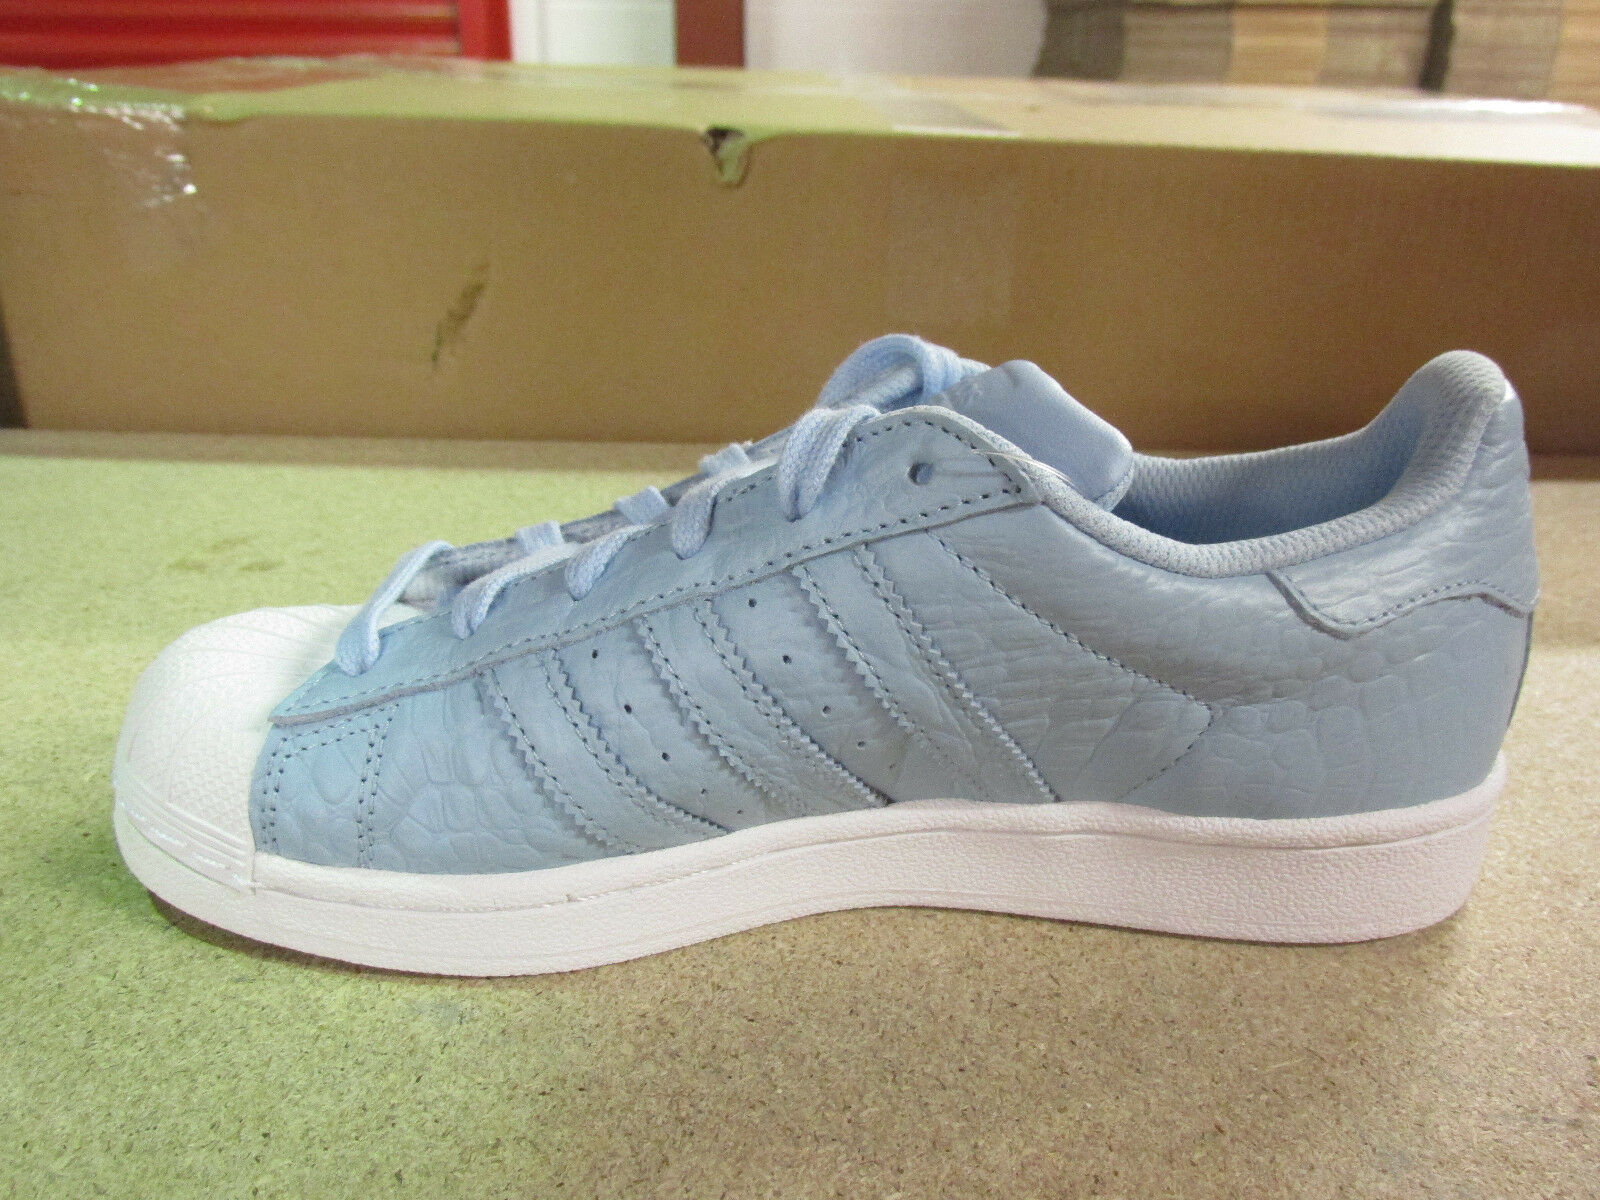 Adidas Originals Superstar S80550 Femme Trainers Sneakers Adidas